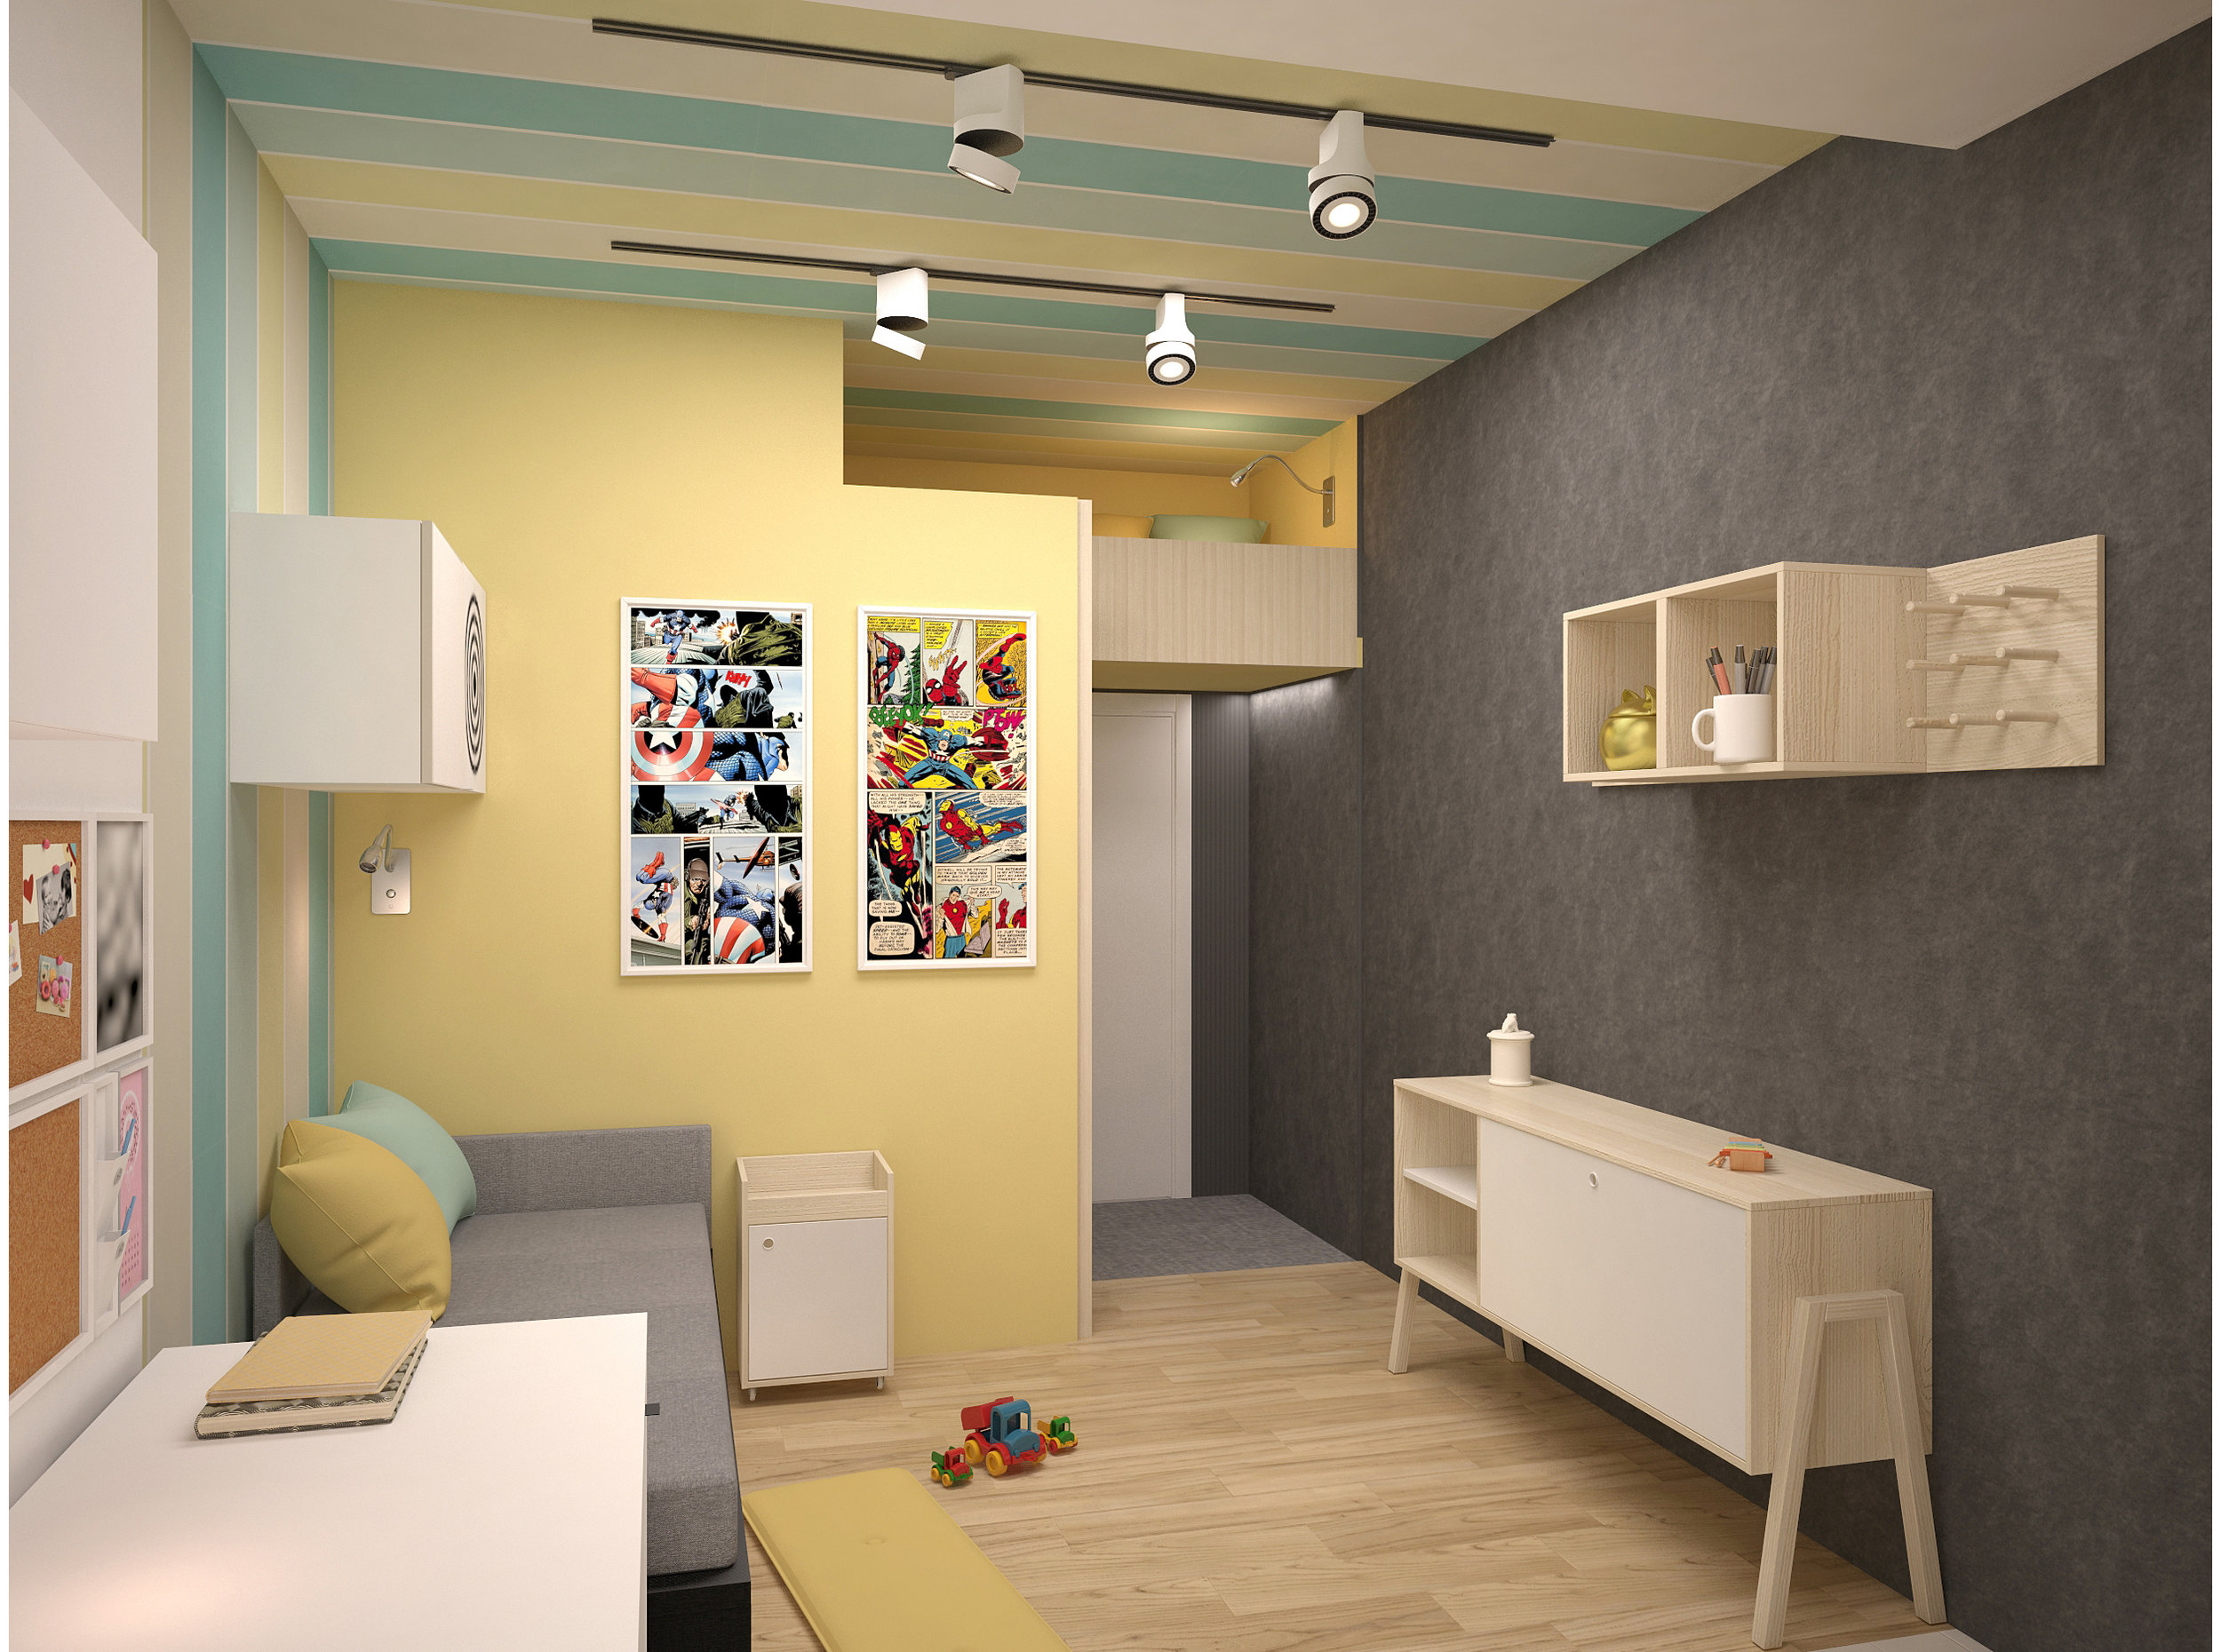 Copy of Boys room with bright colors and striped wallpaper.